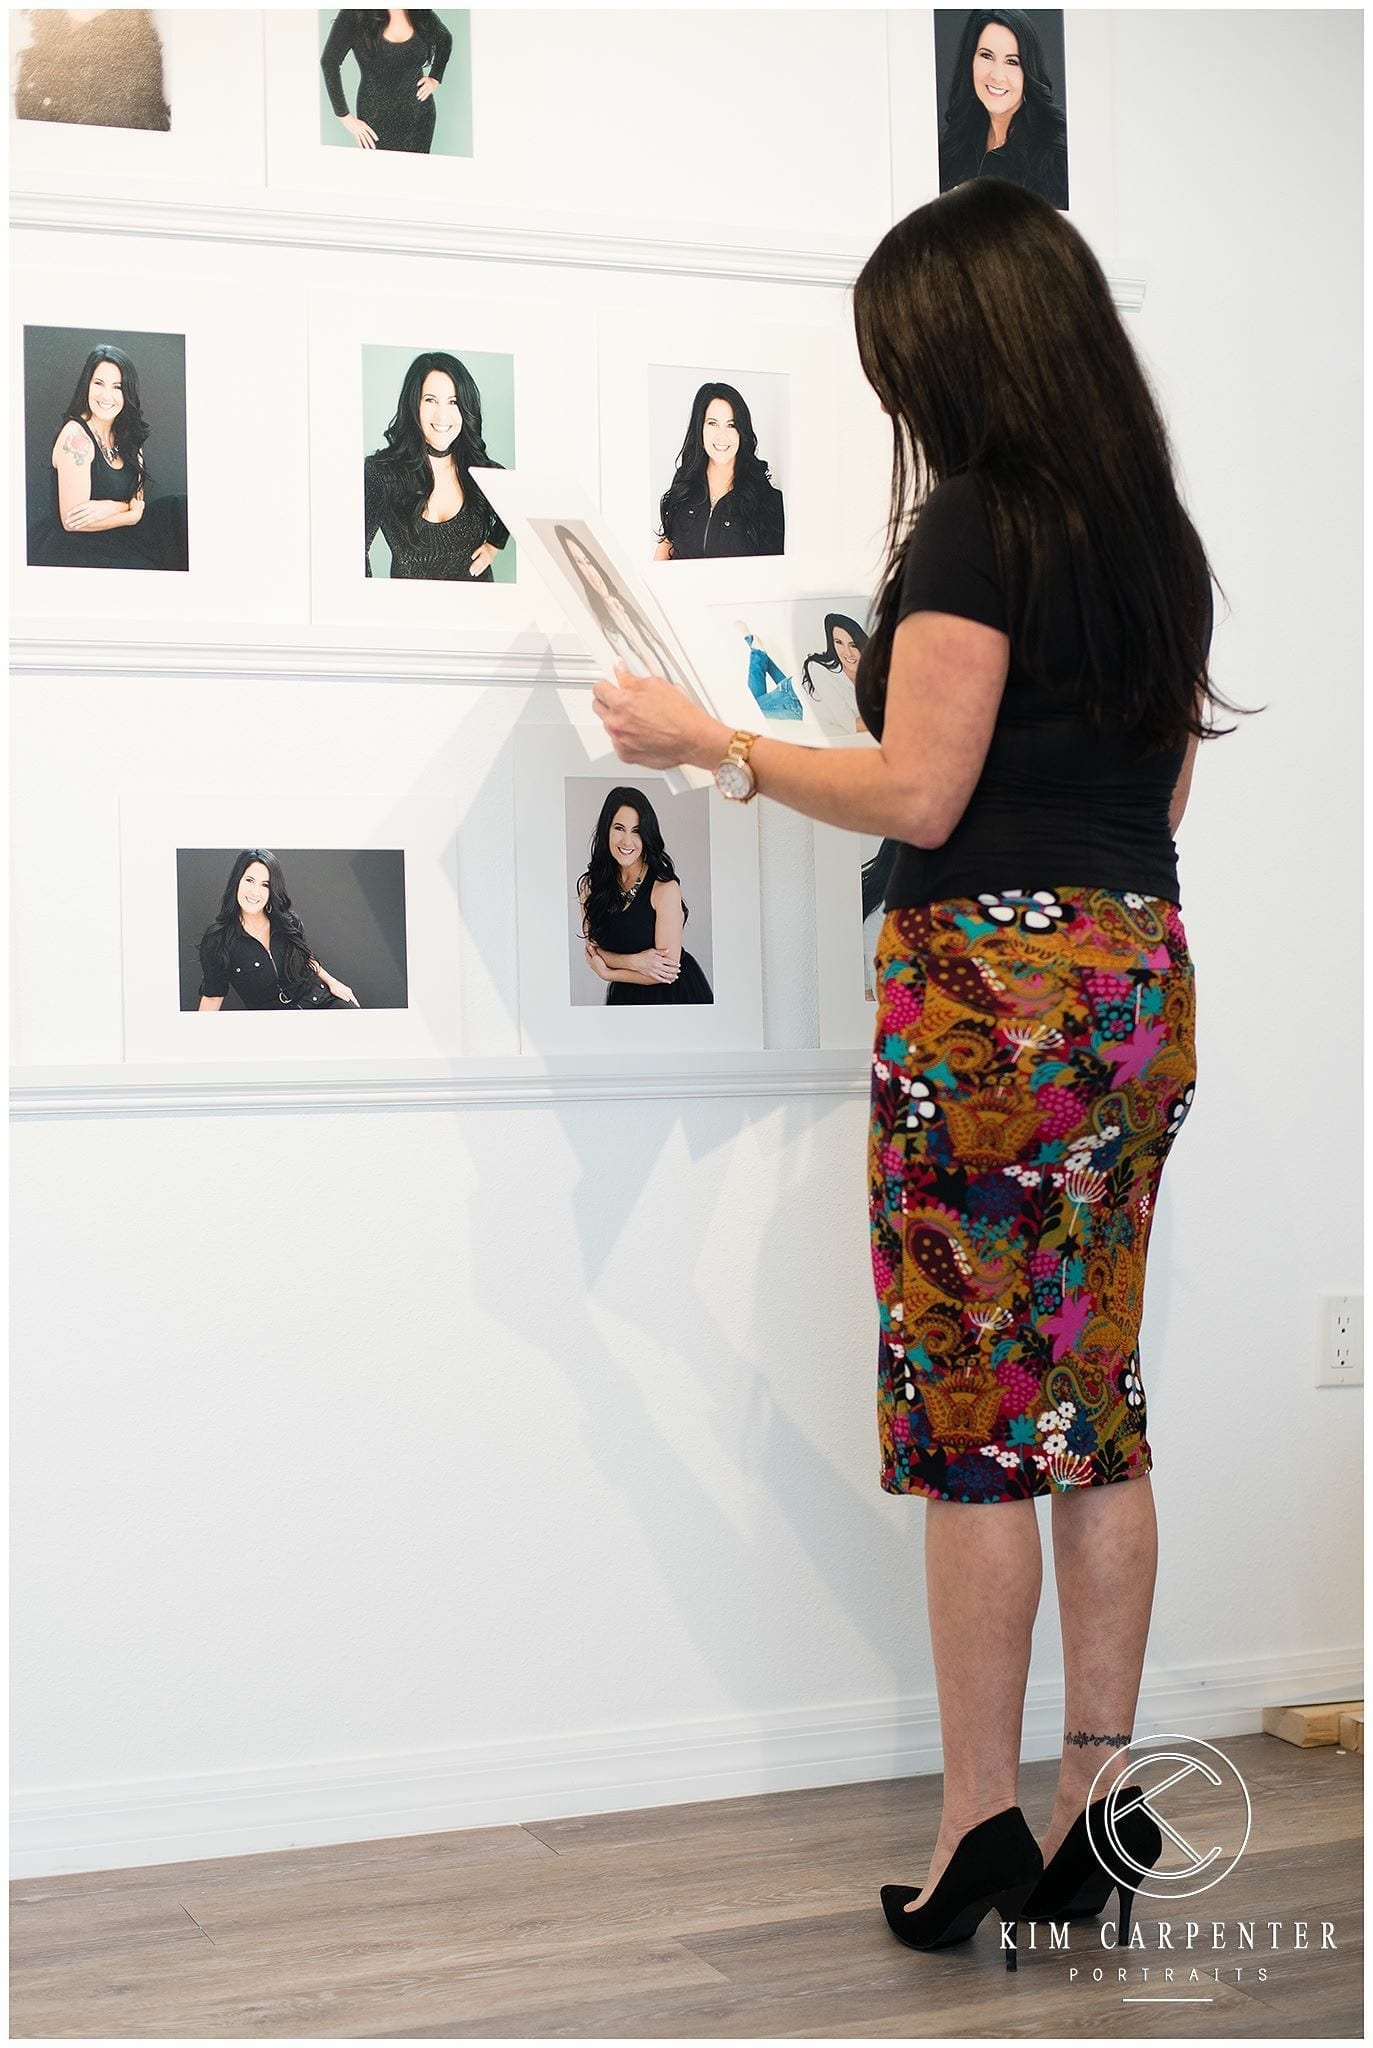 Woman looking at professional headshots on a wall.